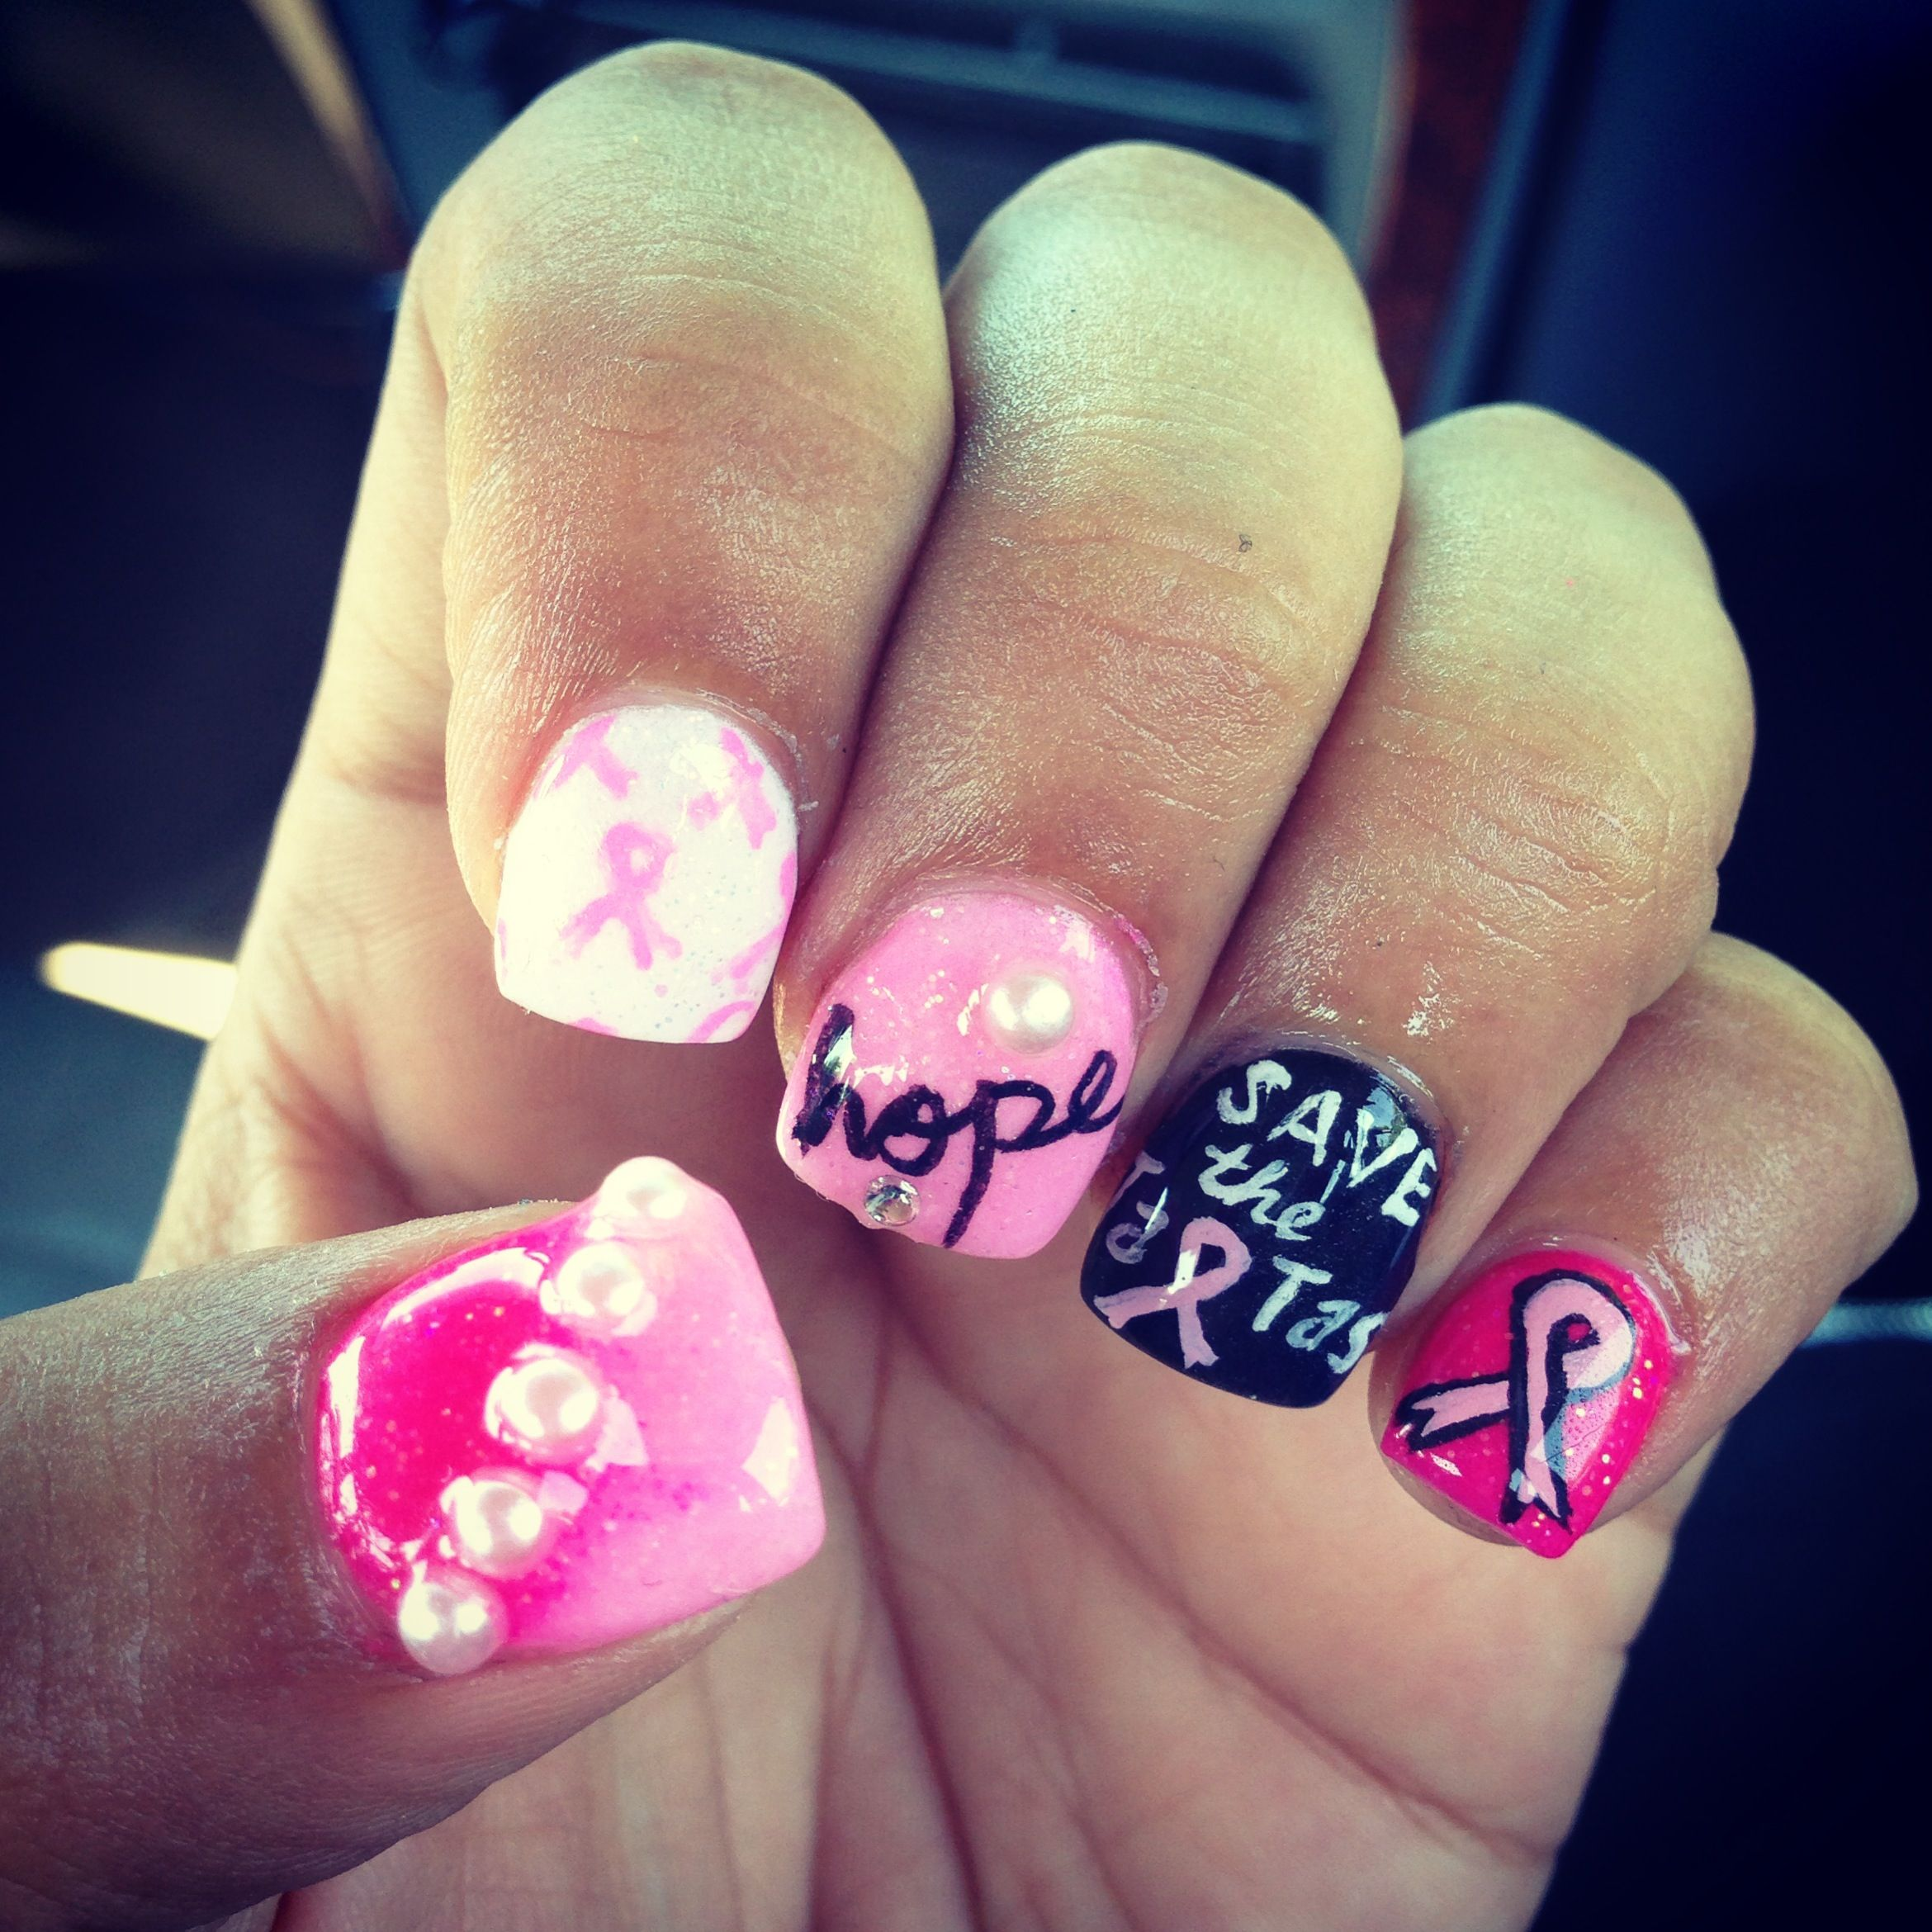 Breast cancer nails! Save the tatas